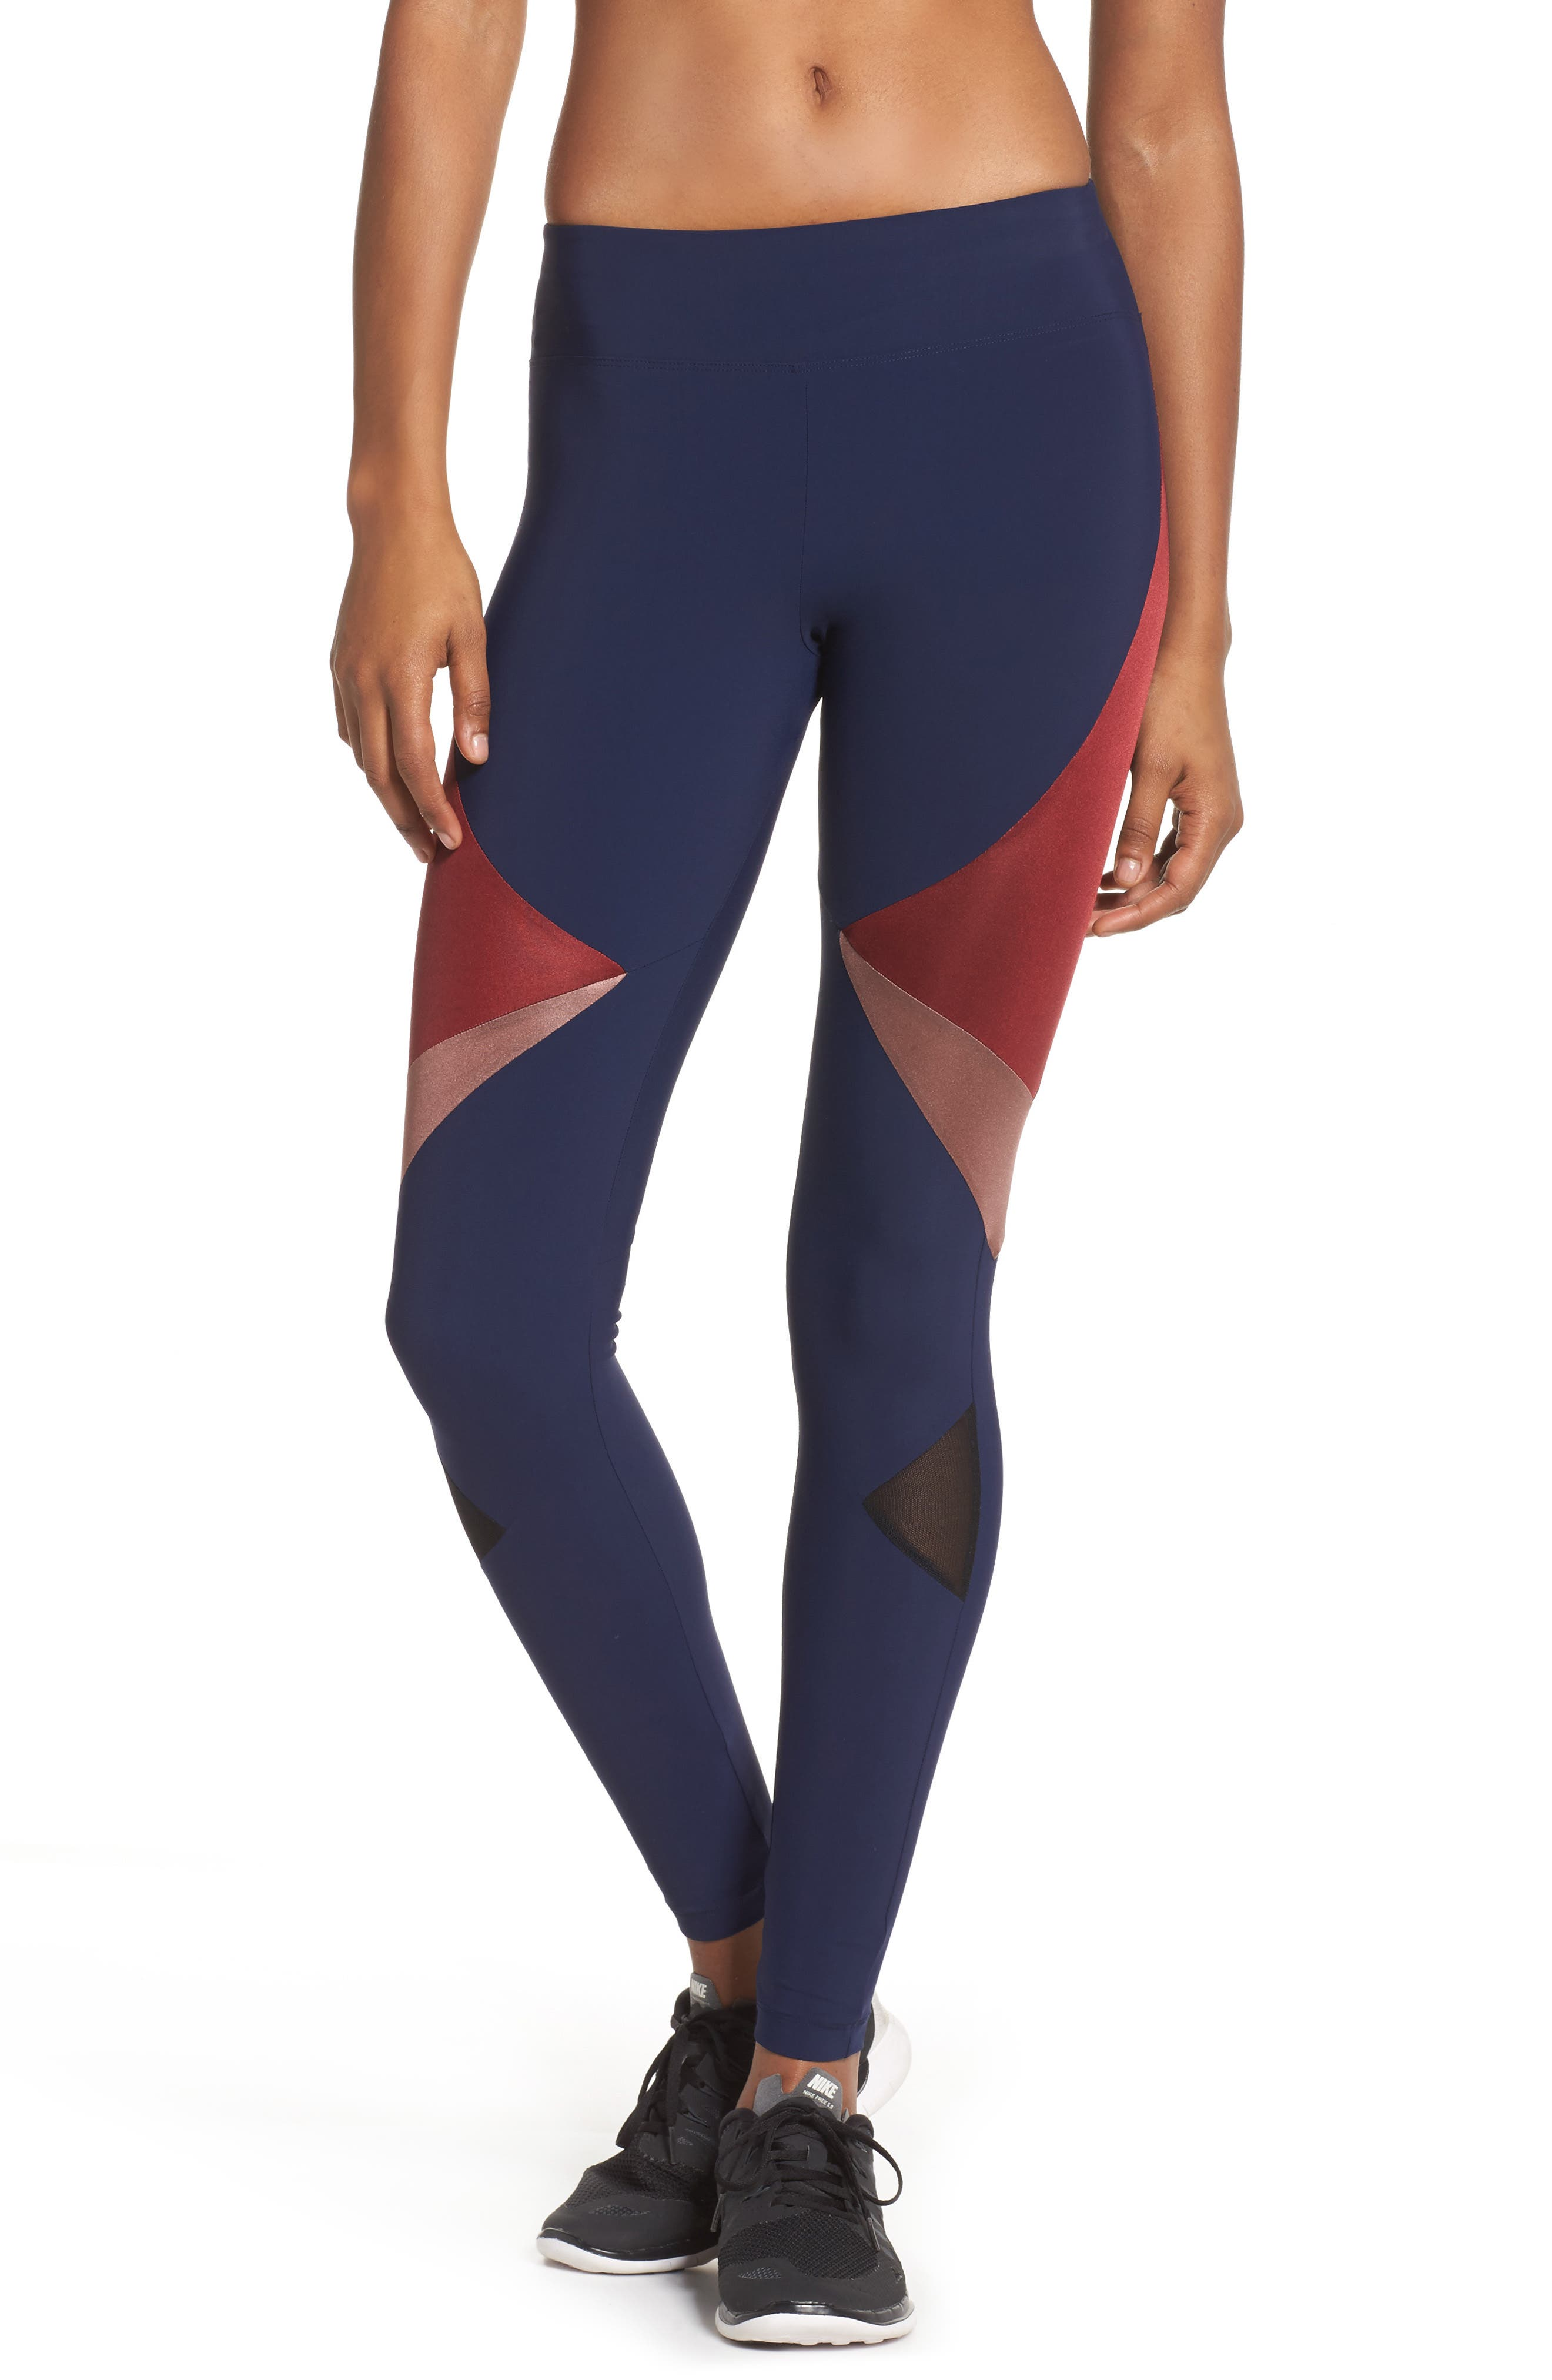 BoomBoom Athletica Compression Leggings,                             Main thumbnail 1, color,                             Navy/Oxblood/Rose Gold